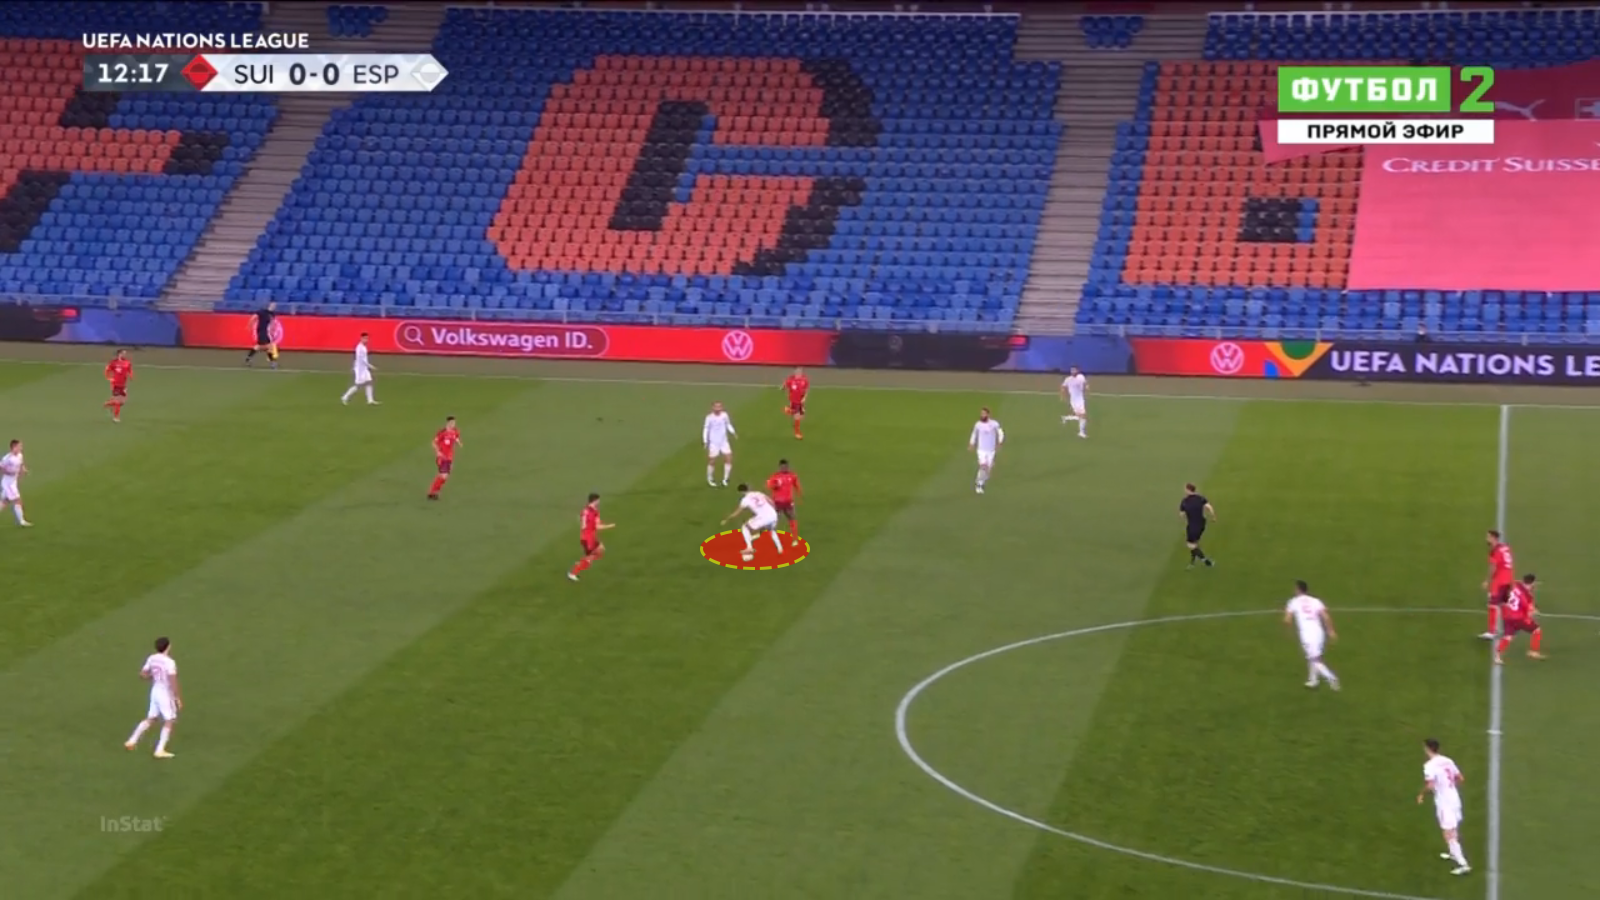 UEFA Nations League 2020/21 - Switzerland vs Spain – tactical analysis - tactics